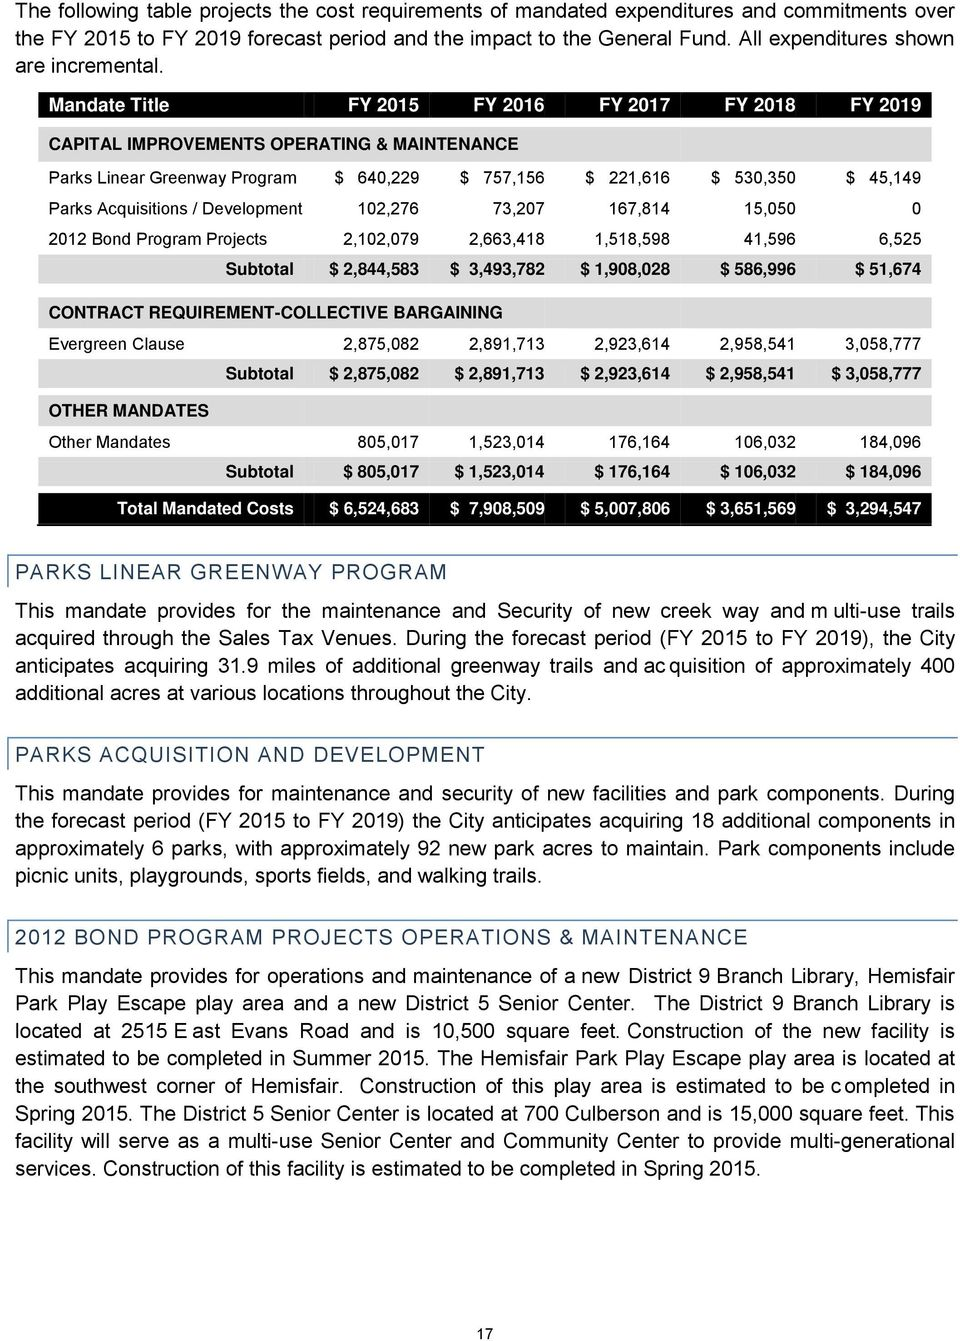 Mandate Title FY 2015 FY 2016 FY 2017 FY 2018 FY 2019 CAPITAL IMPROVEMENTS OPERATING & MAINTENANCE Parks Linear Greenway Program $ 640,229 $ 757,156 $ 221,616 $ 530,350 $ 45,149 Parks Acquisitions /